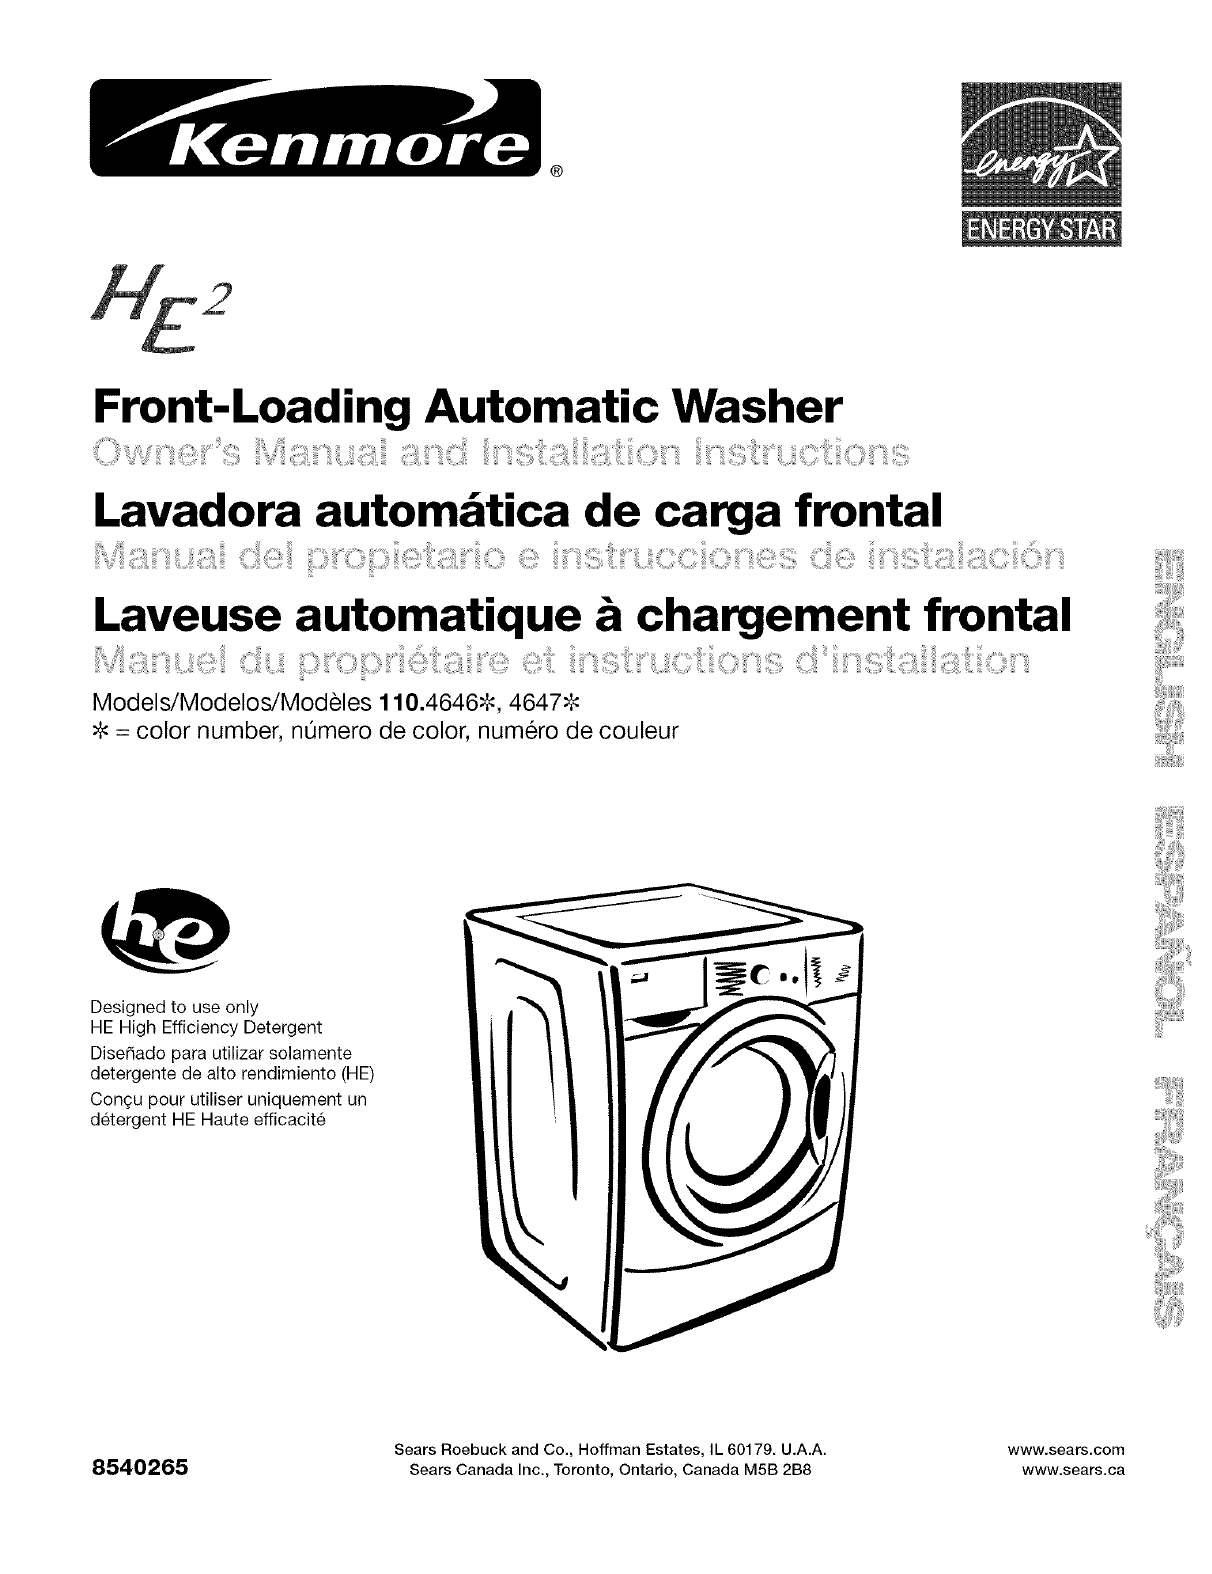 85a1800b 58a2 41cf ae61 017e09f15564 bg1?resize=840%2C1091 kenmore washer diagram periodic & diagrams science Kenmore 110 Washer Wiring Diagram at eliteediting.co